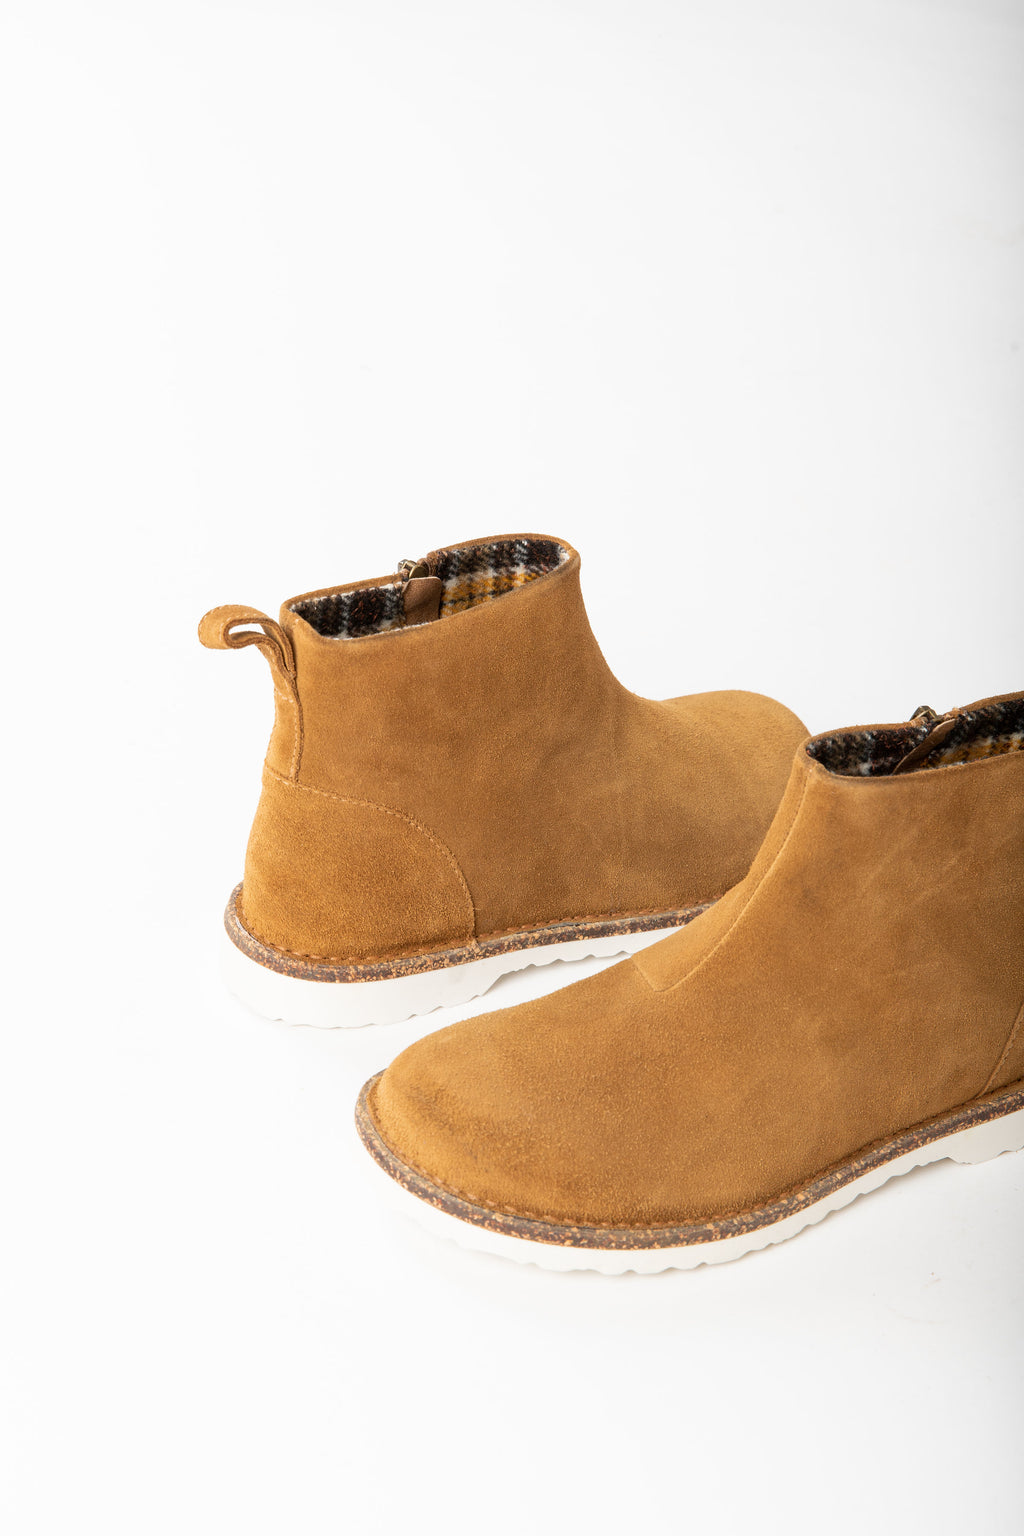 Birkenstock: Melrose Boot Suede Leather in Tea Hydrophobic, studio shoot; side view